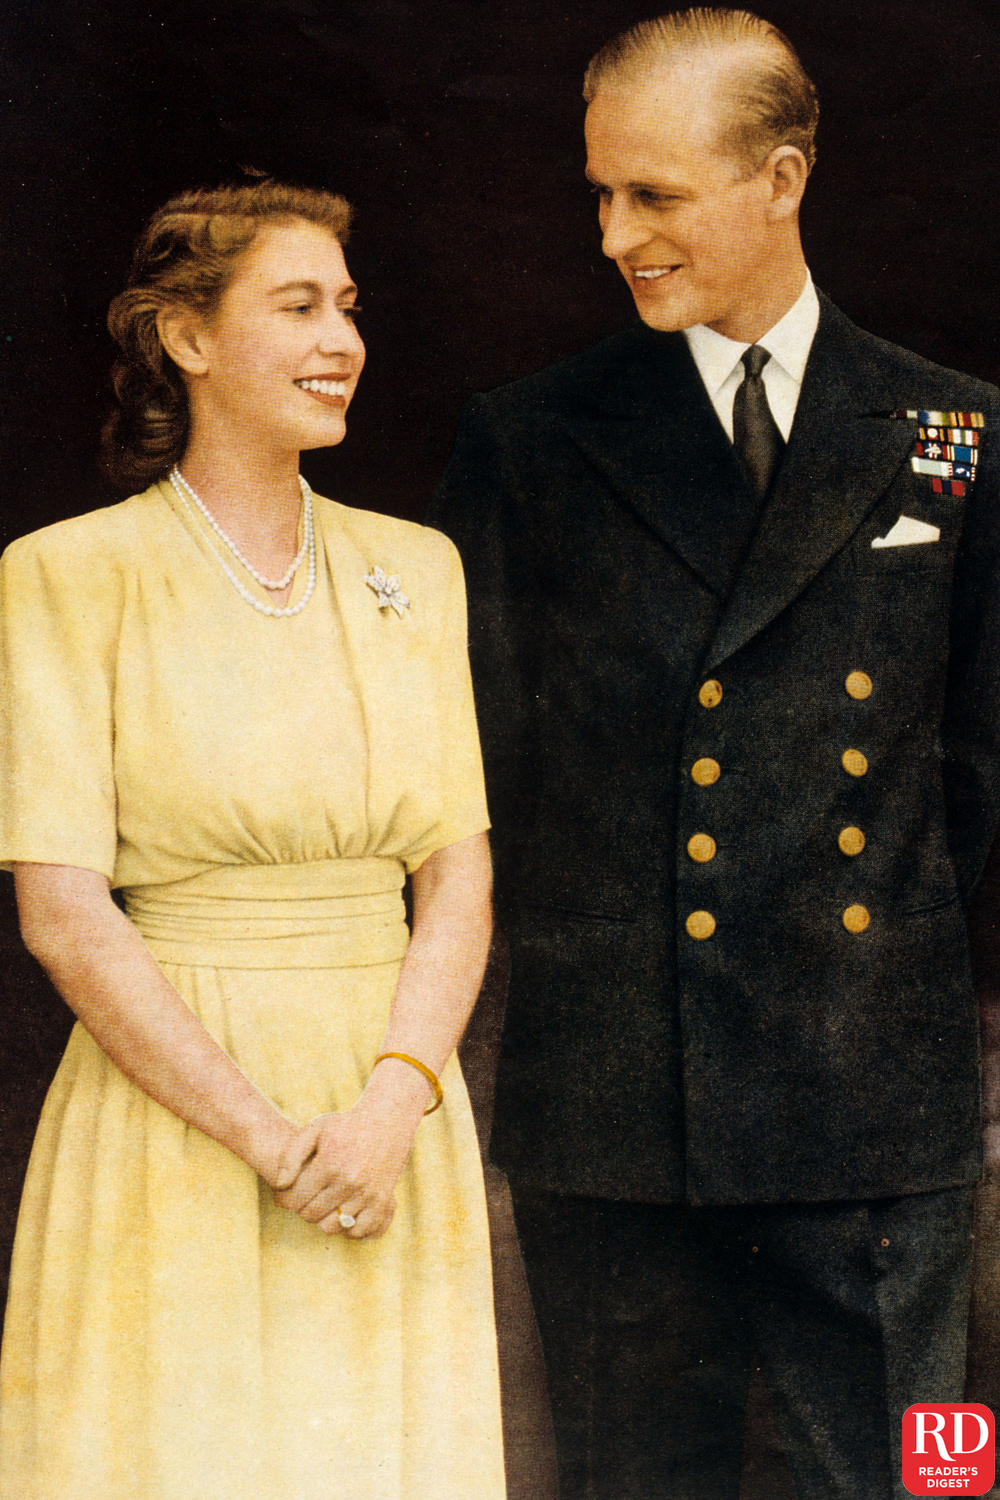 14 Things Queen Elizabeth II Doesn't Want You to Know